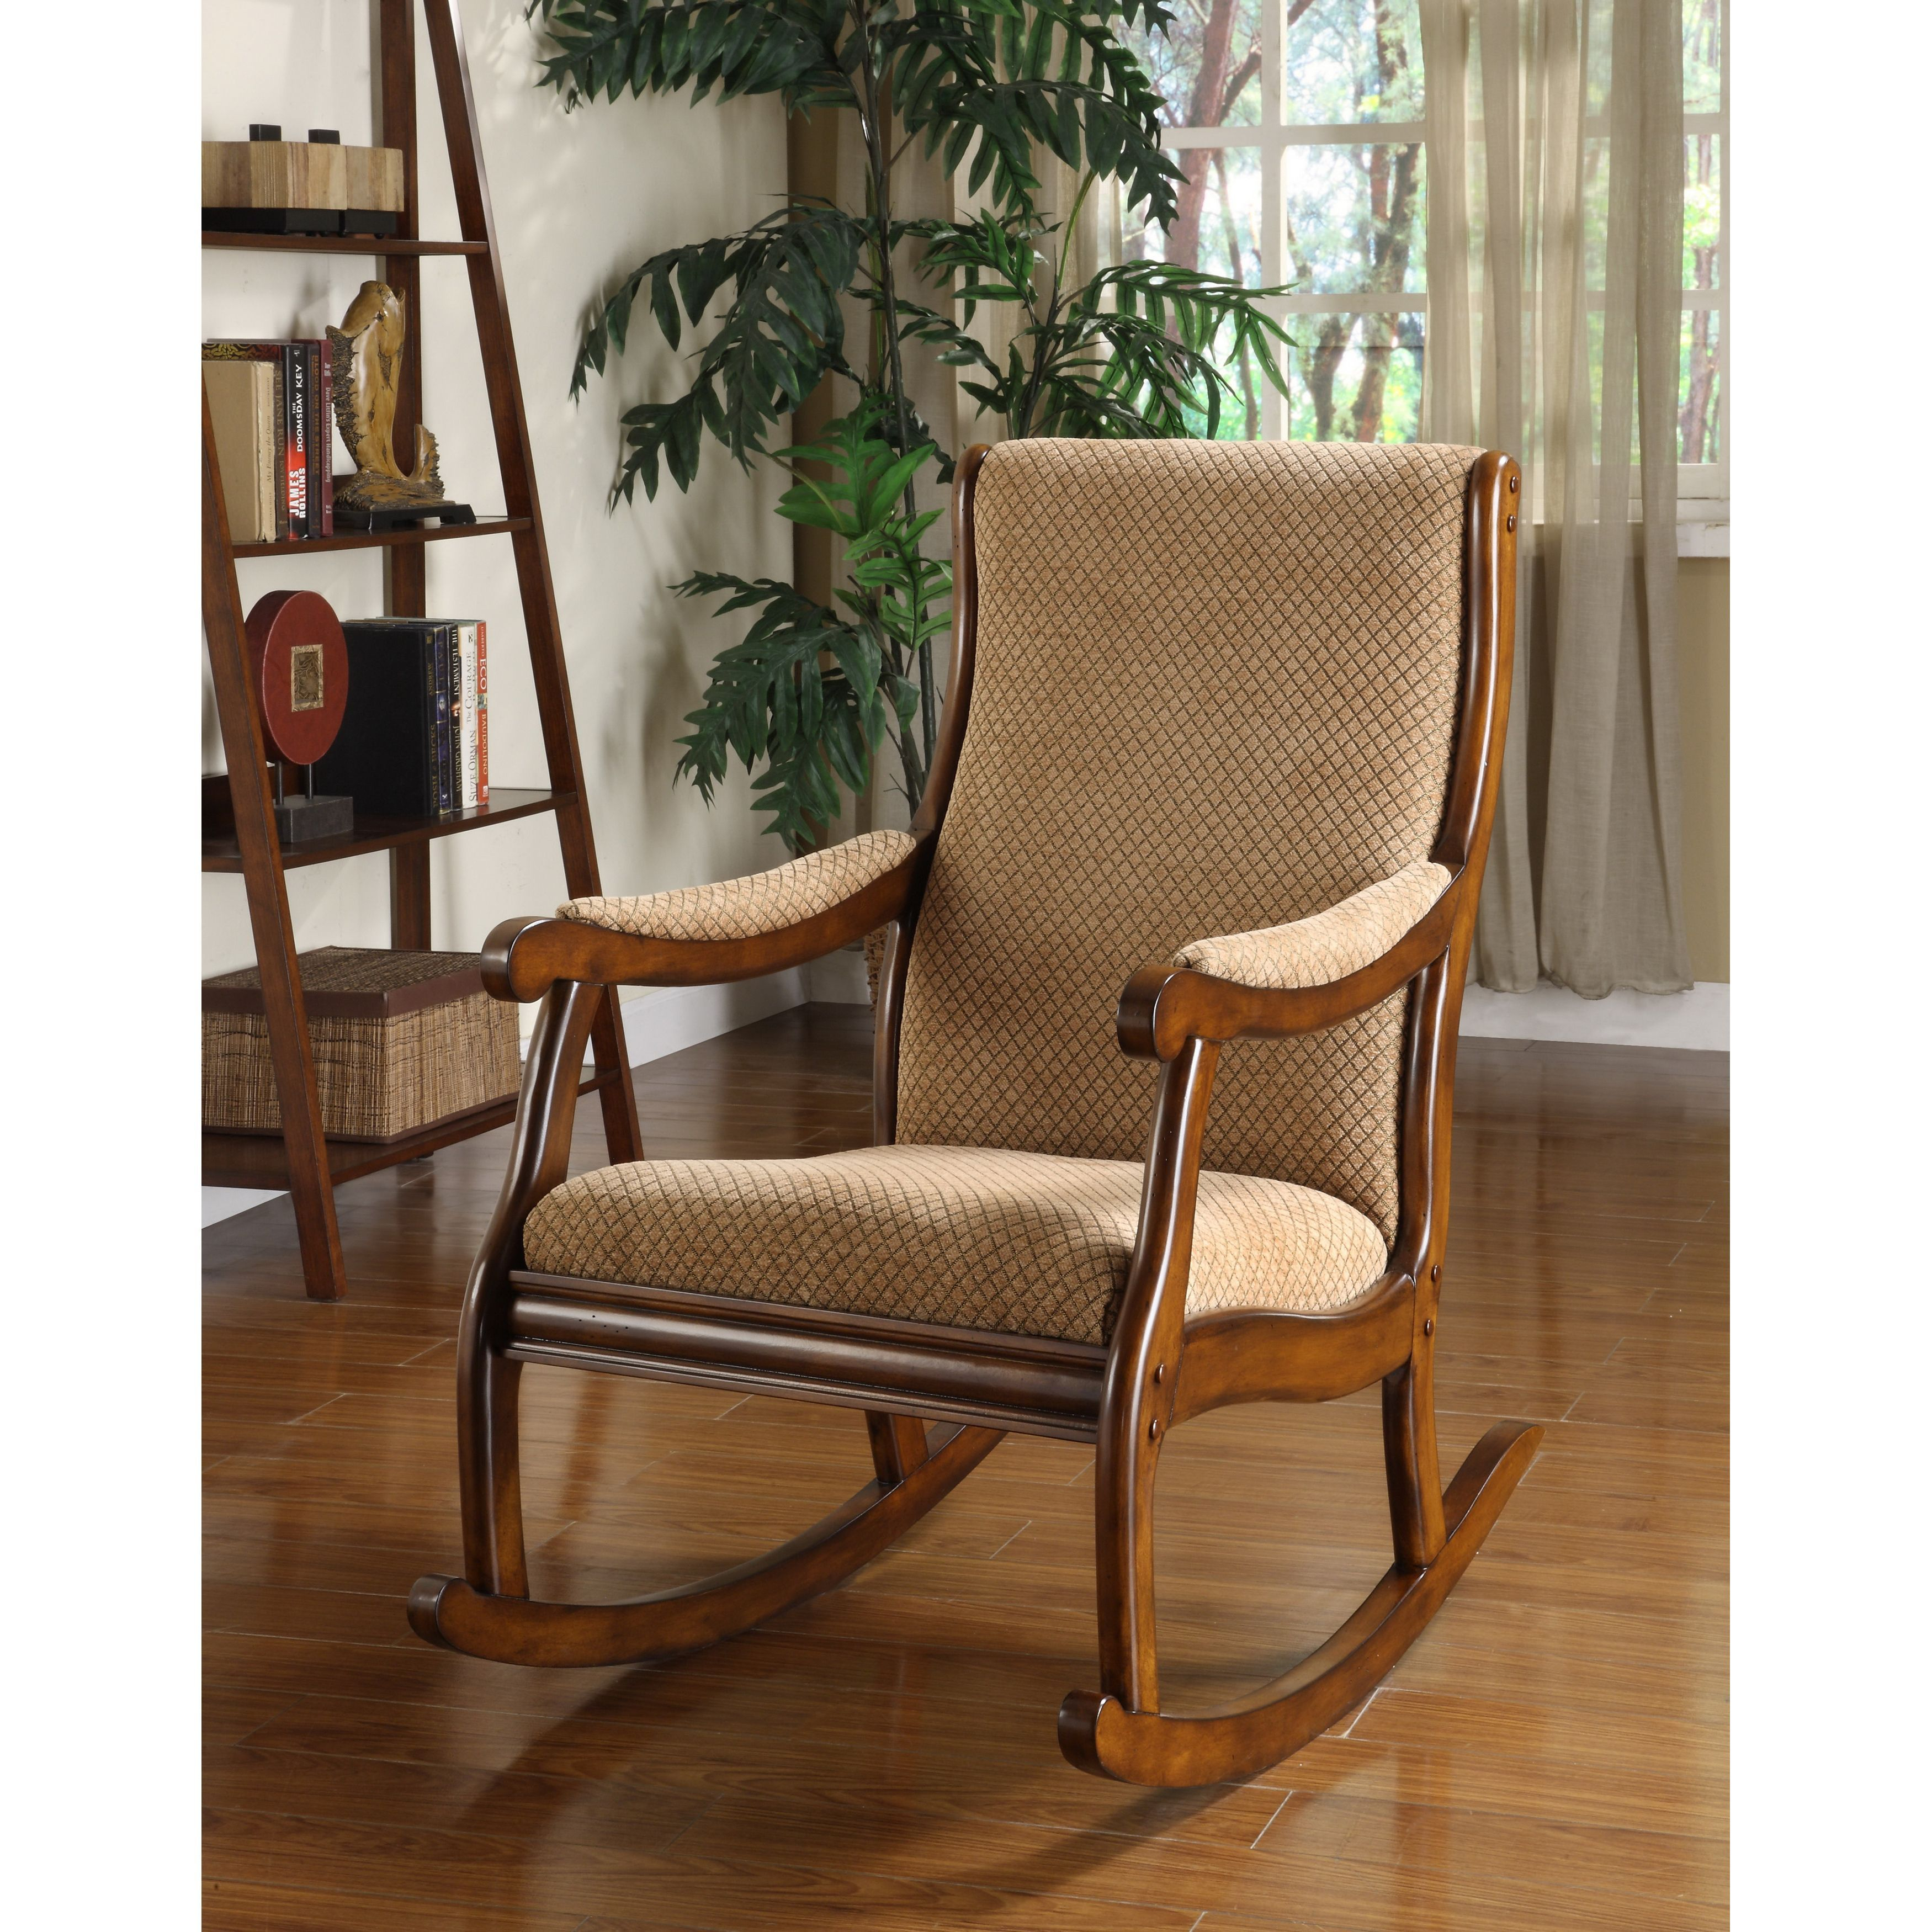 Antique Transitional Warm Oak Rocking Chairfoa | British With Liverpool Classic Style Rocking Chairs In Antique Oak Finish (#4 of 20)